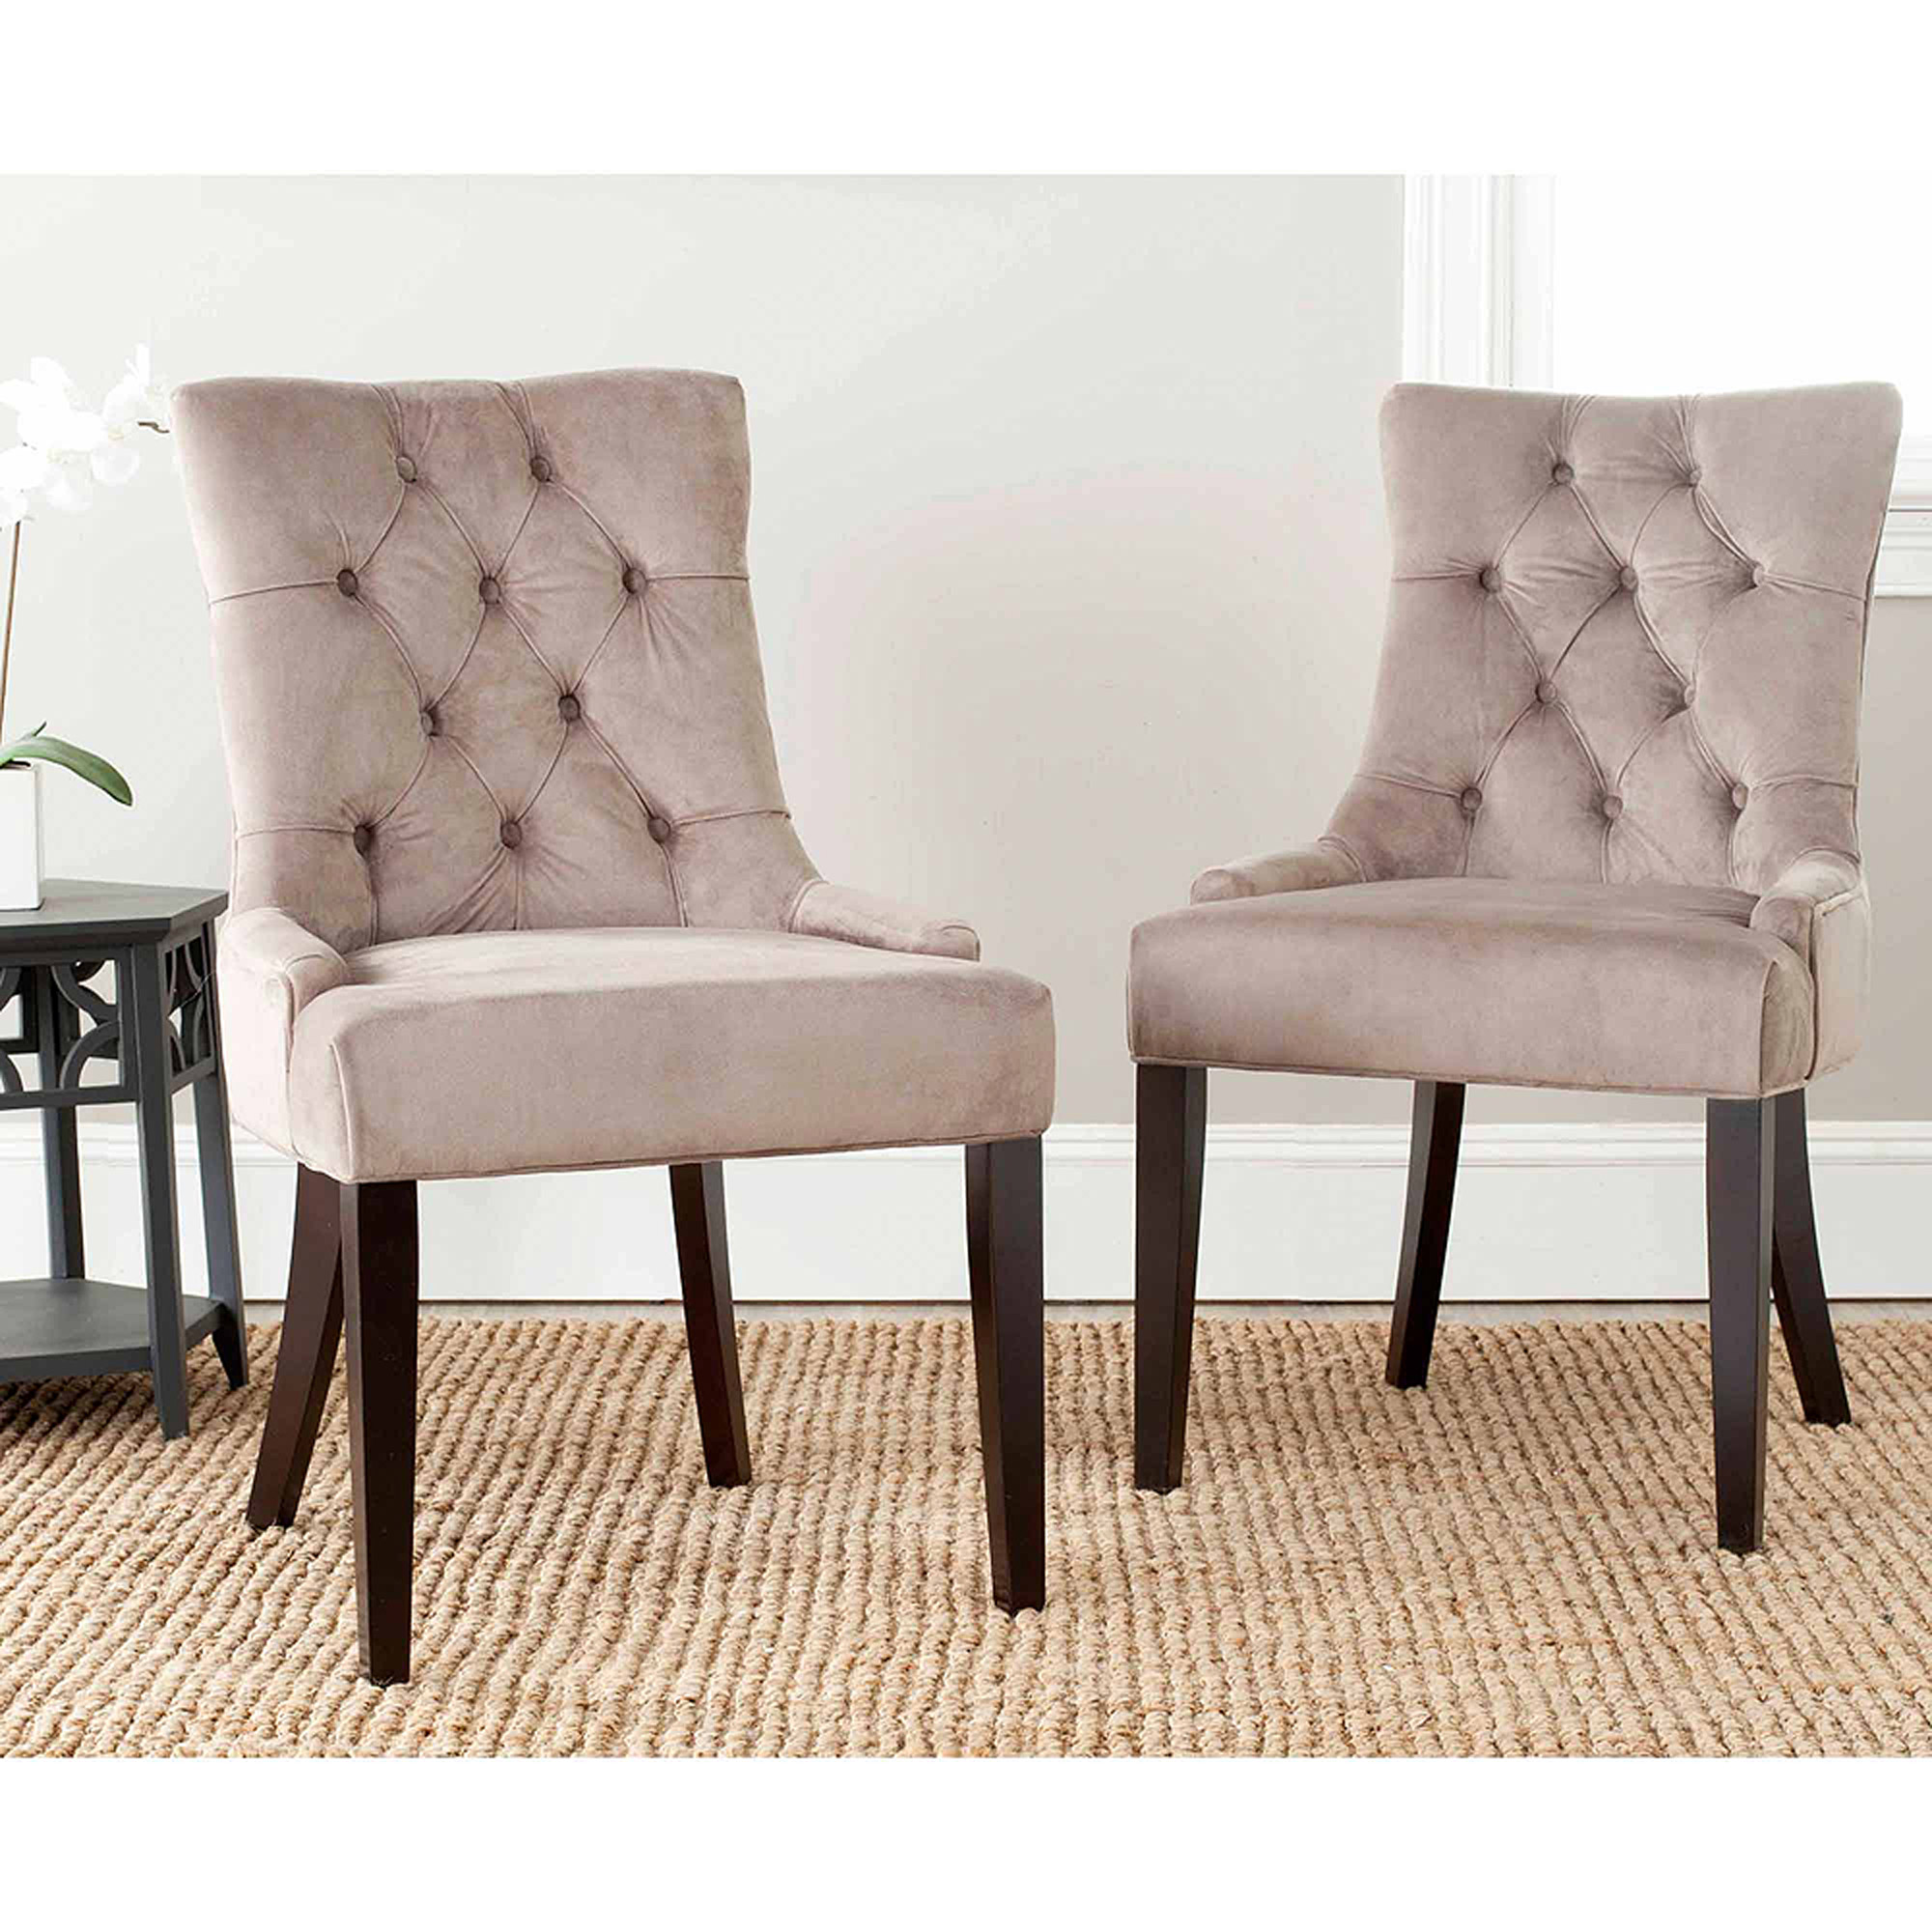 Safavieh Abby Side Chair, Set of 2